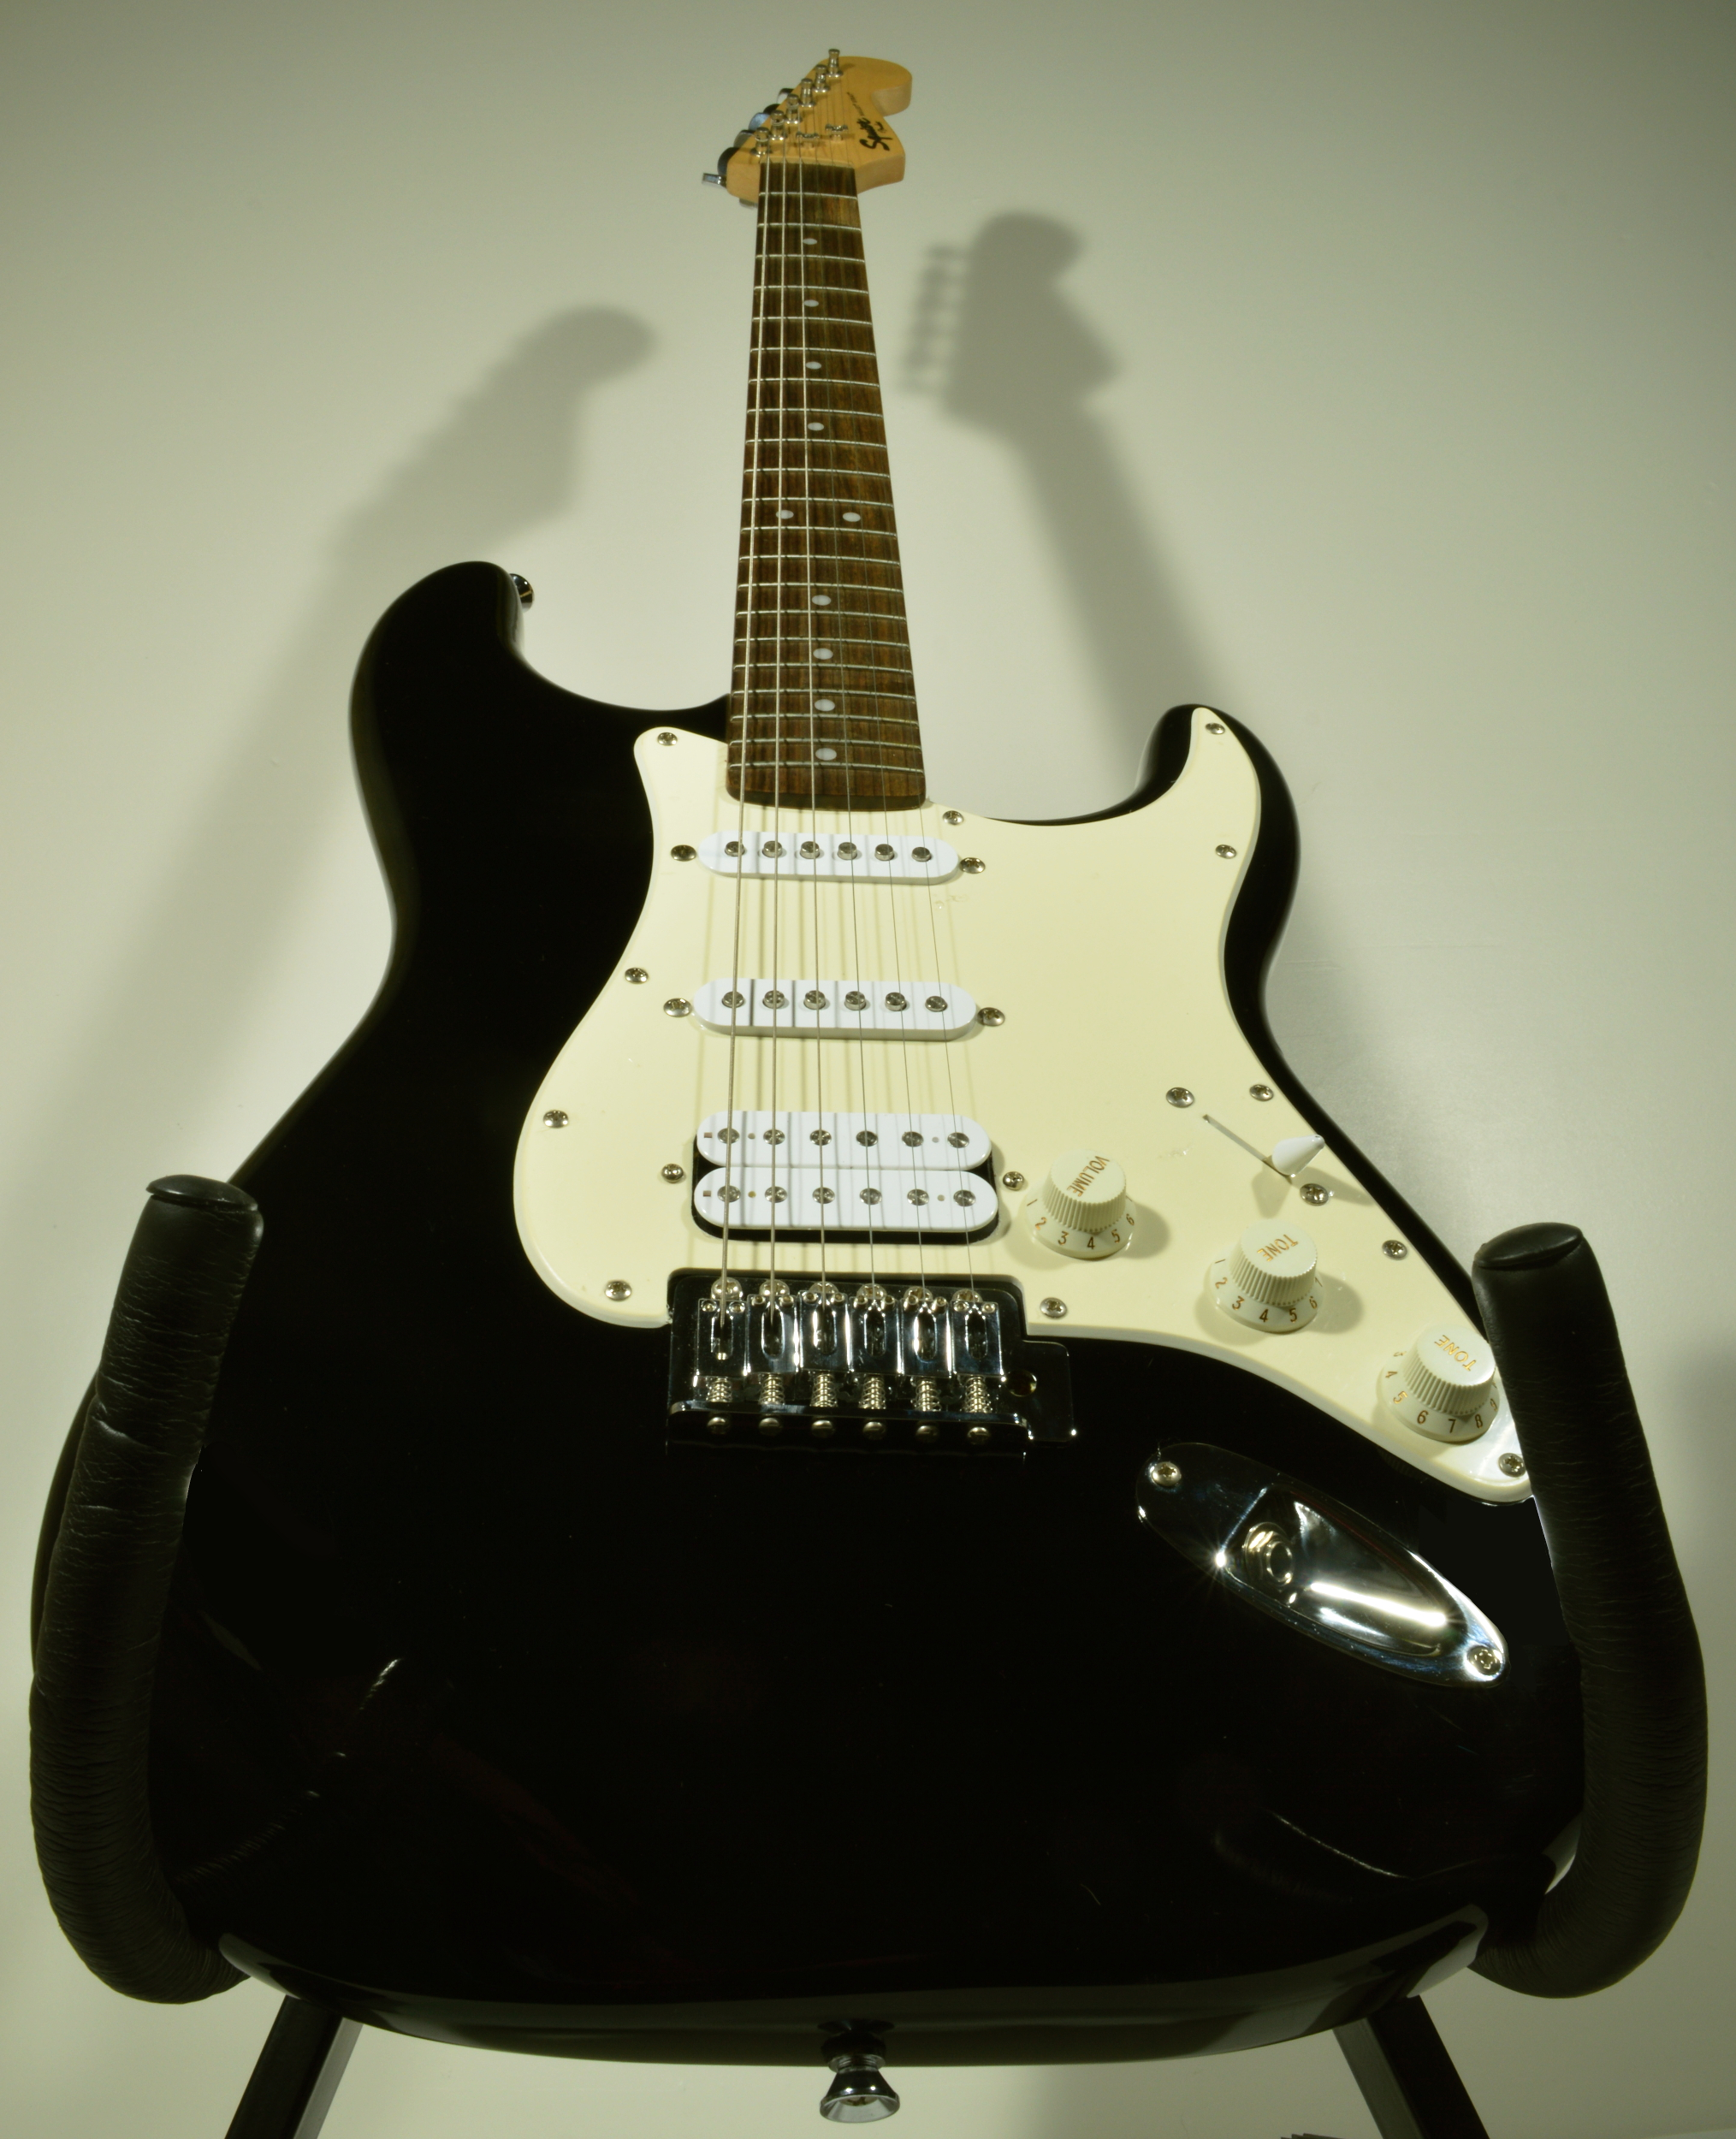 Fender Squire Bullet Stratocaster